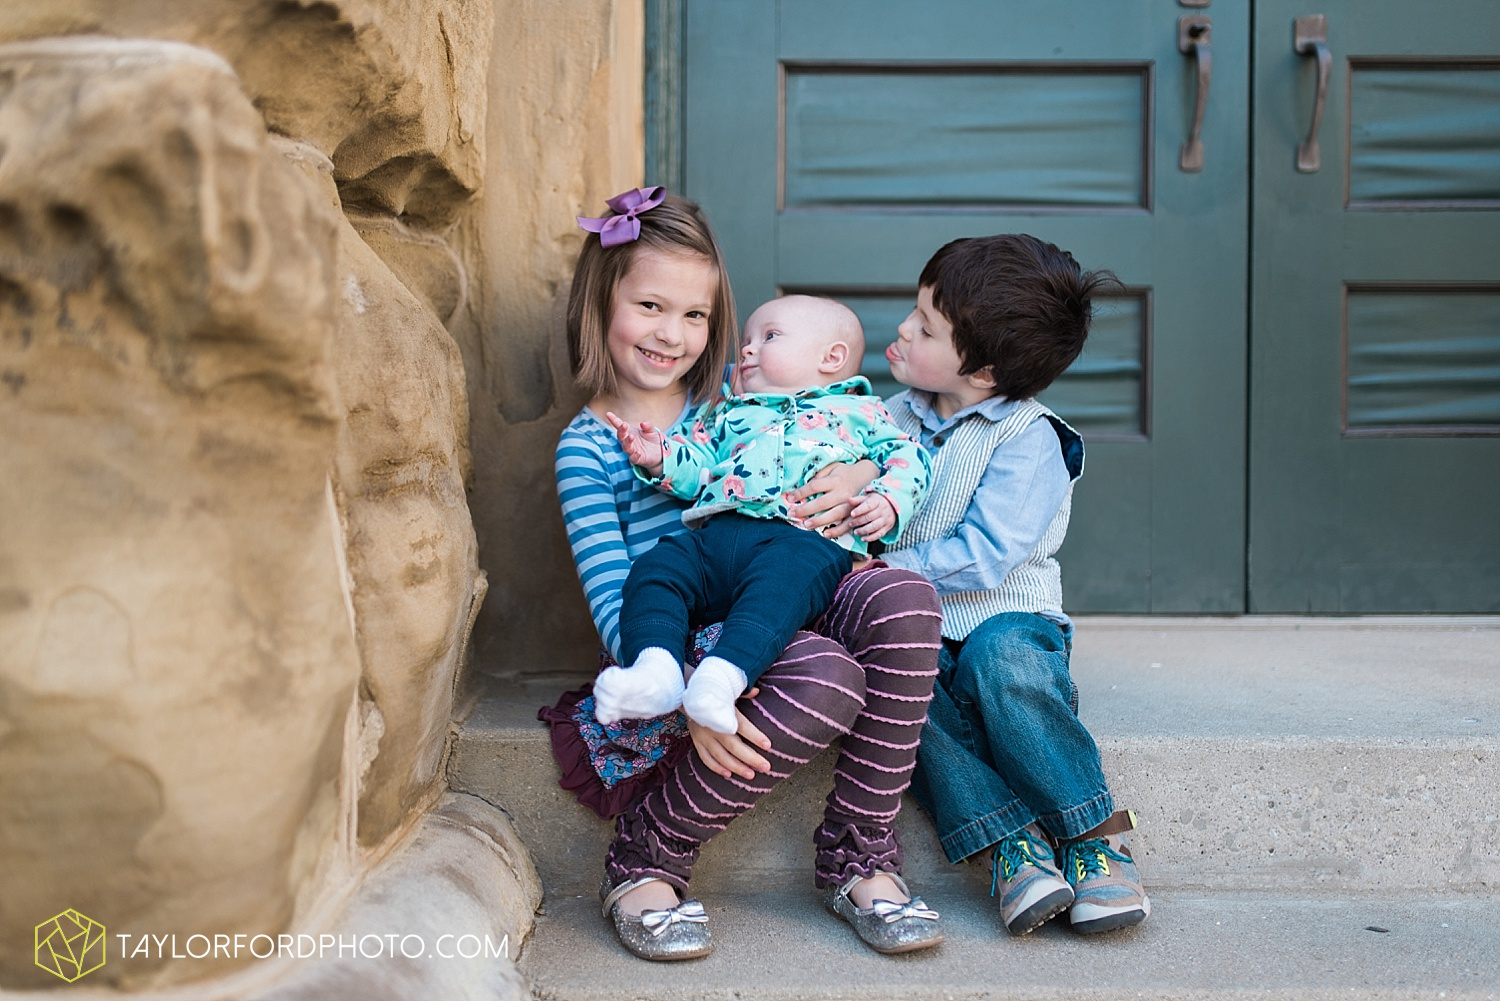 fort-wayne-indiana-family-photographer-taylor-ford-photography-van-wert-lima-ohio-soaff-park_1653.jpg